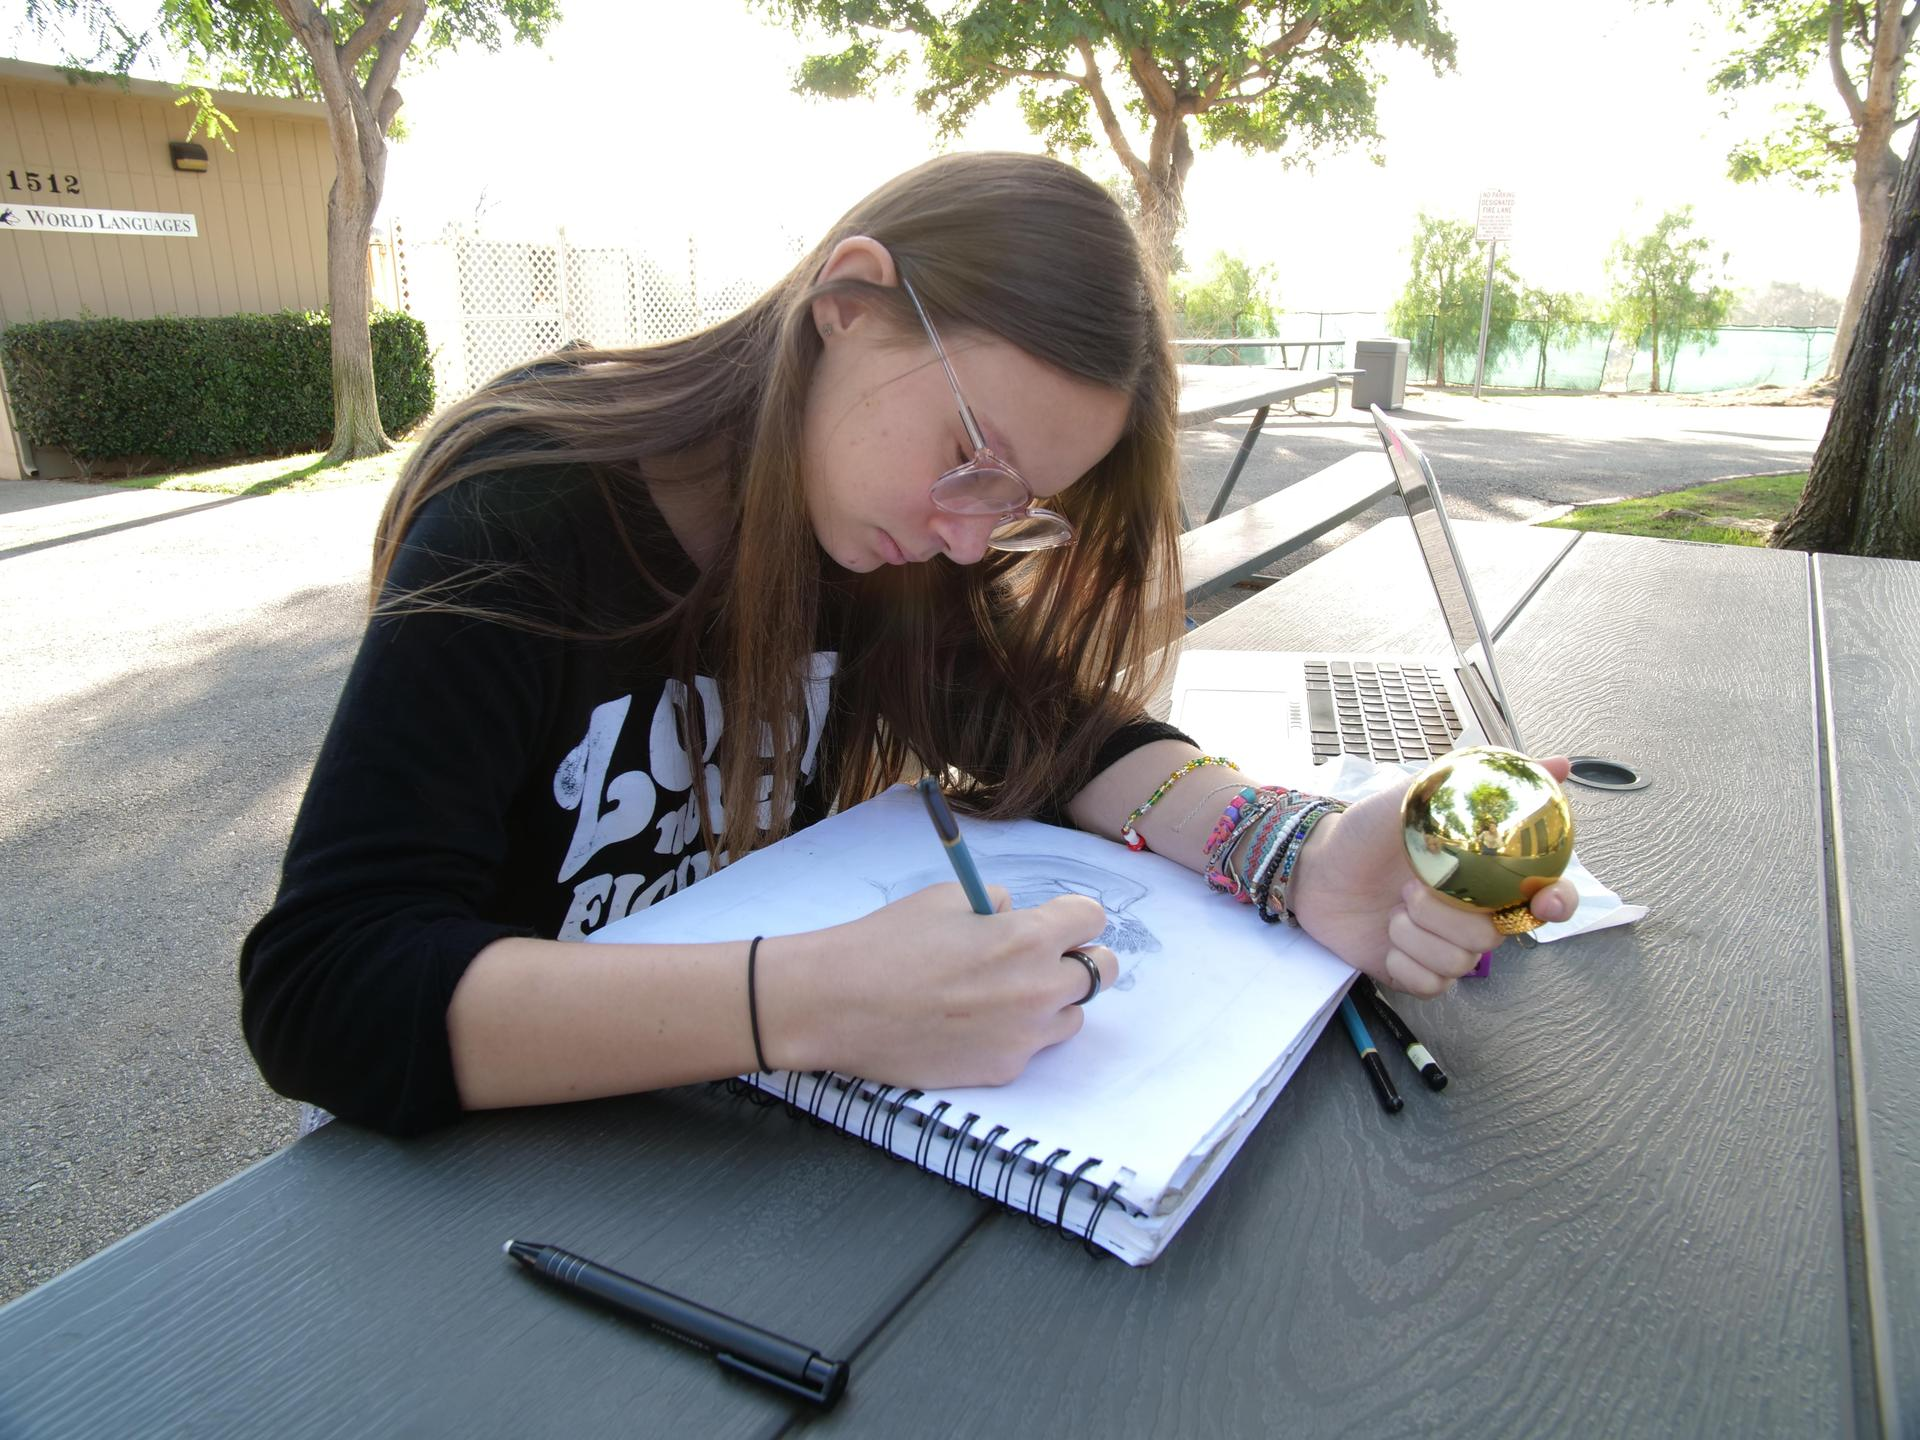 Student works on reflection drawing outdoors.